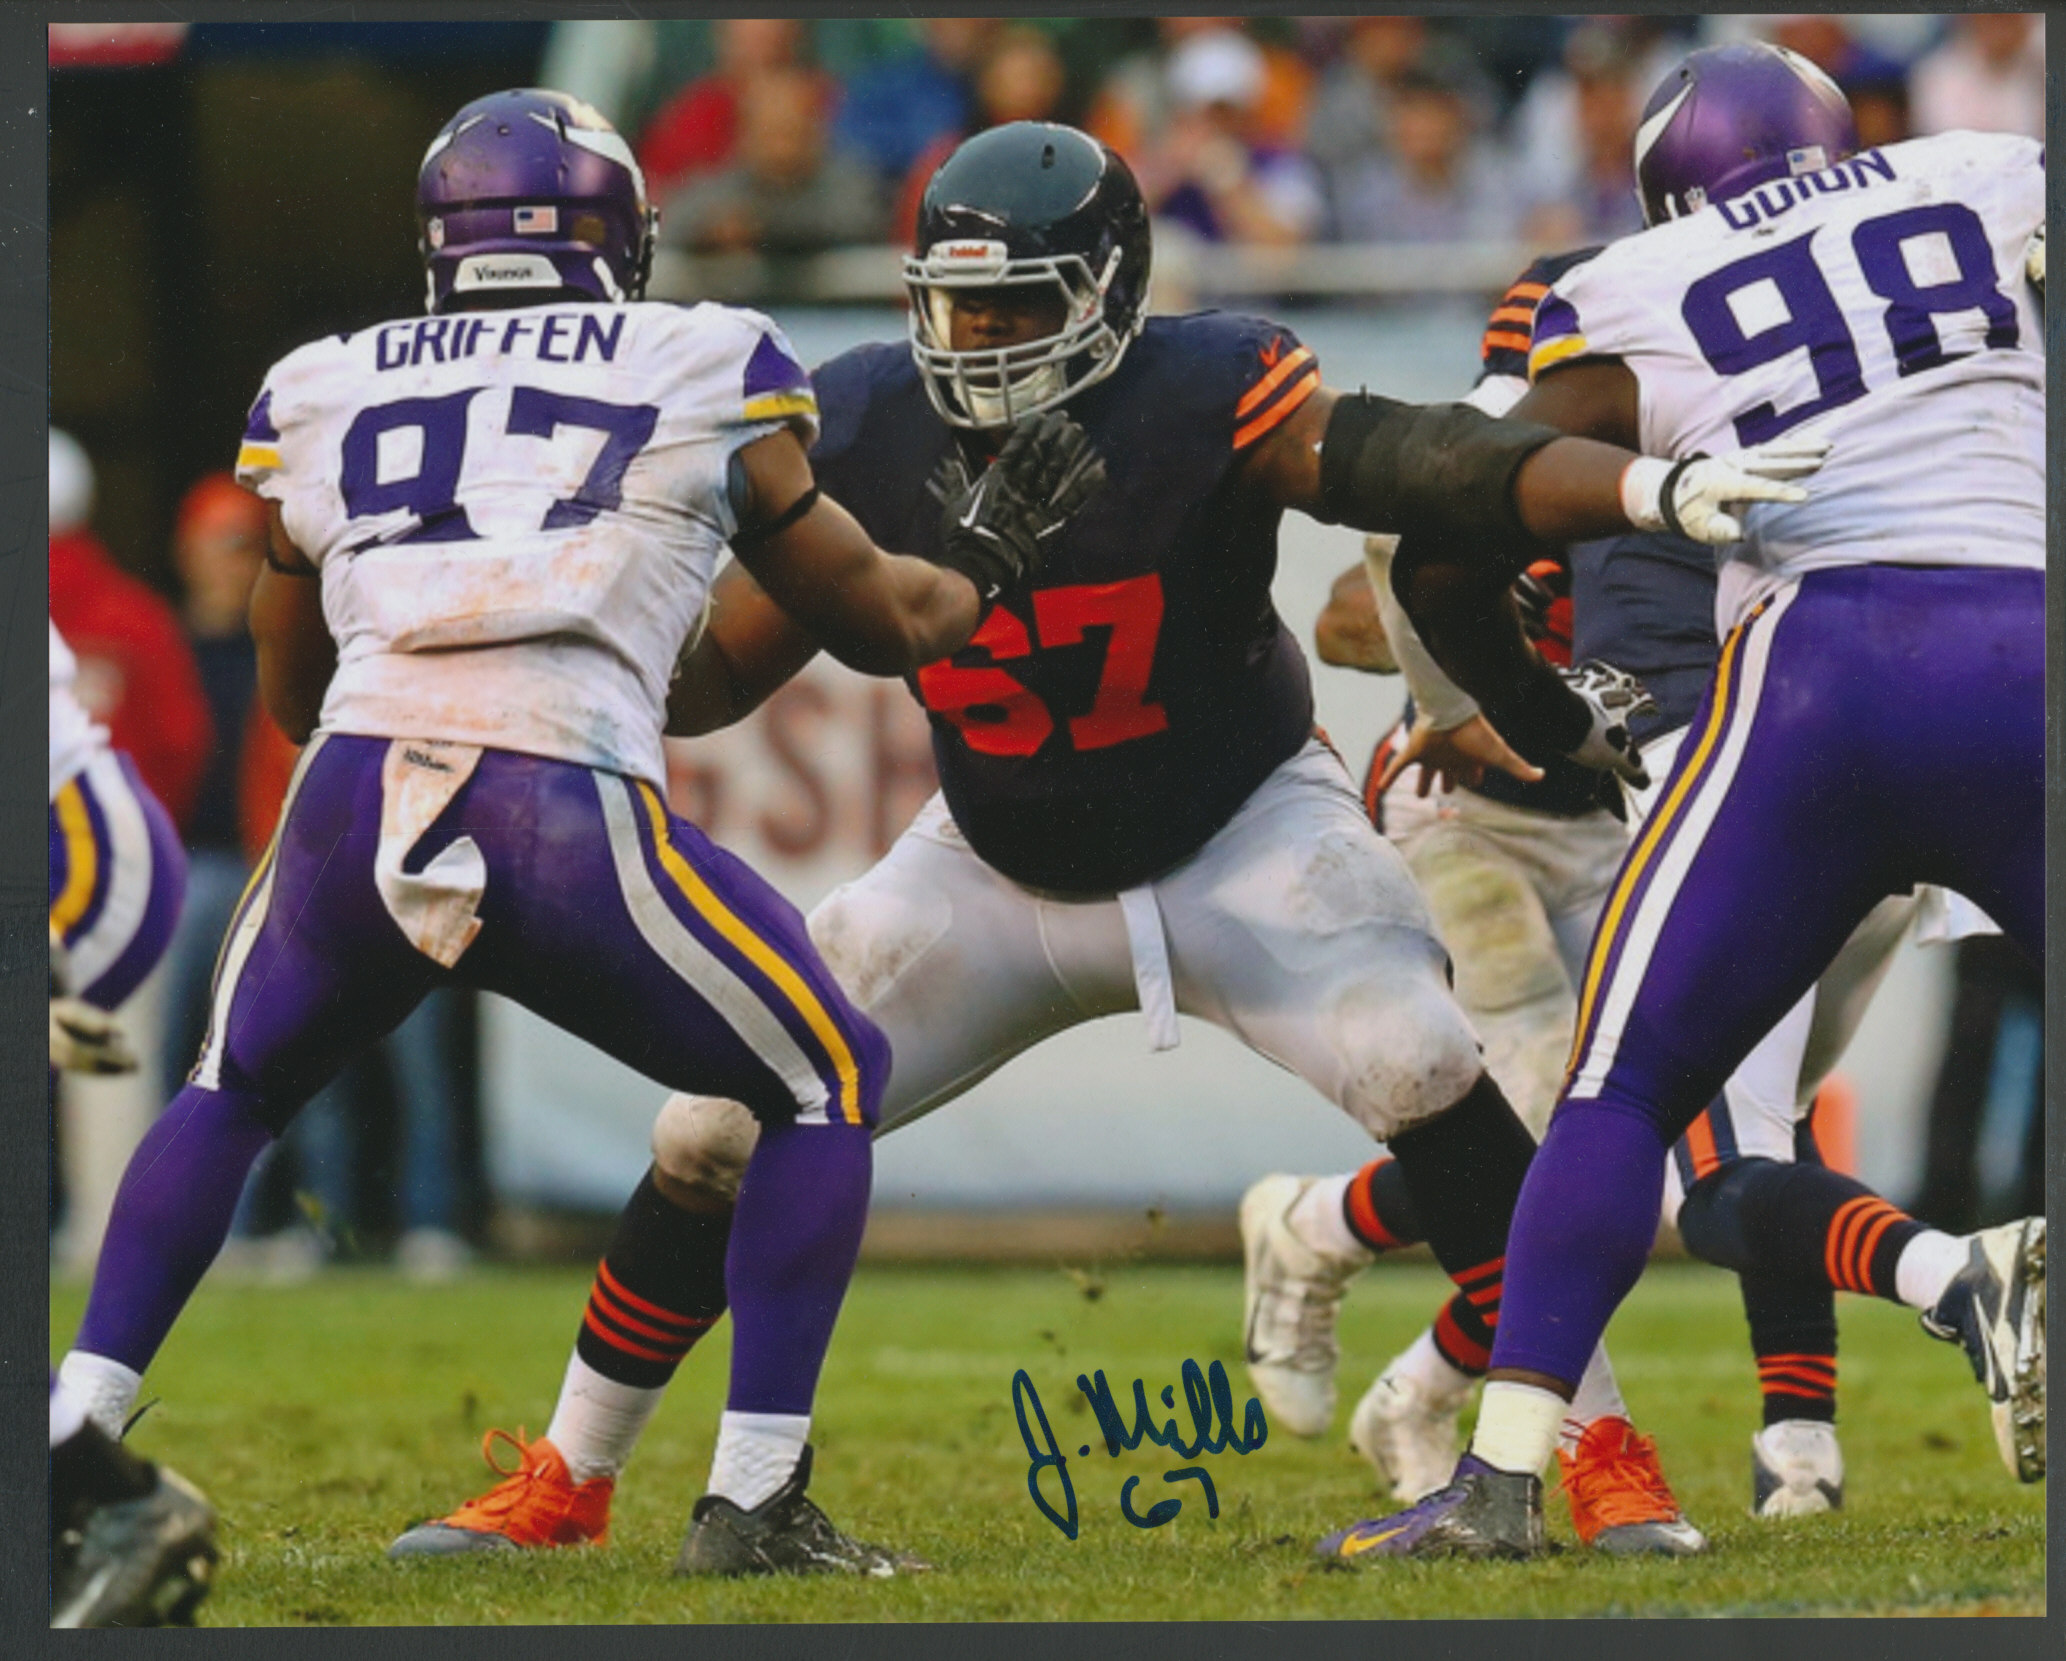 Details About Jordan Mills Signed 8x10 Photo Bbce Baseball Card Exchange Auto Chicago Bears